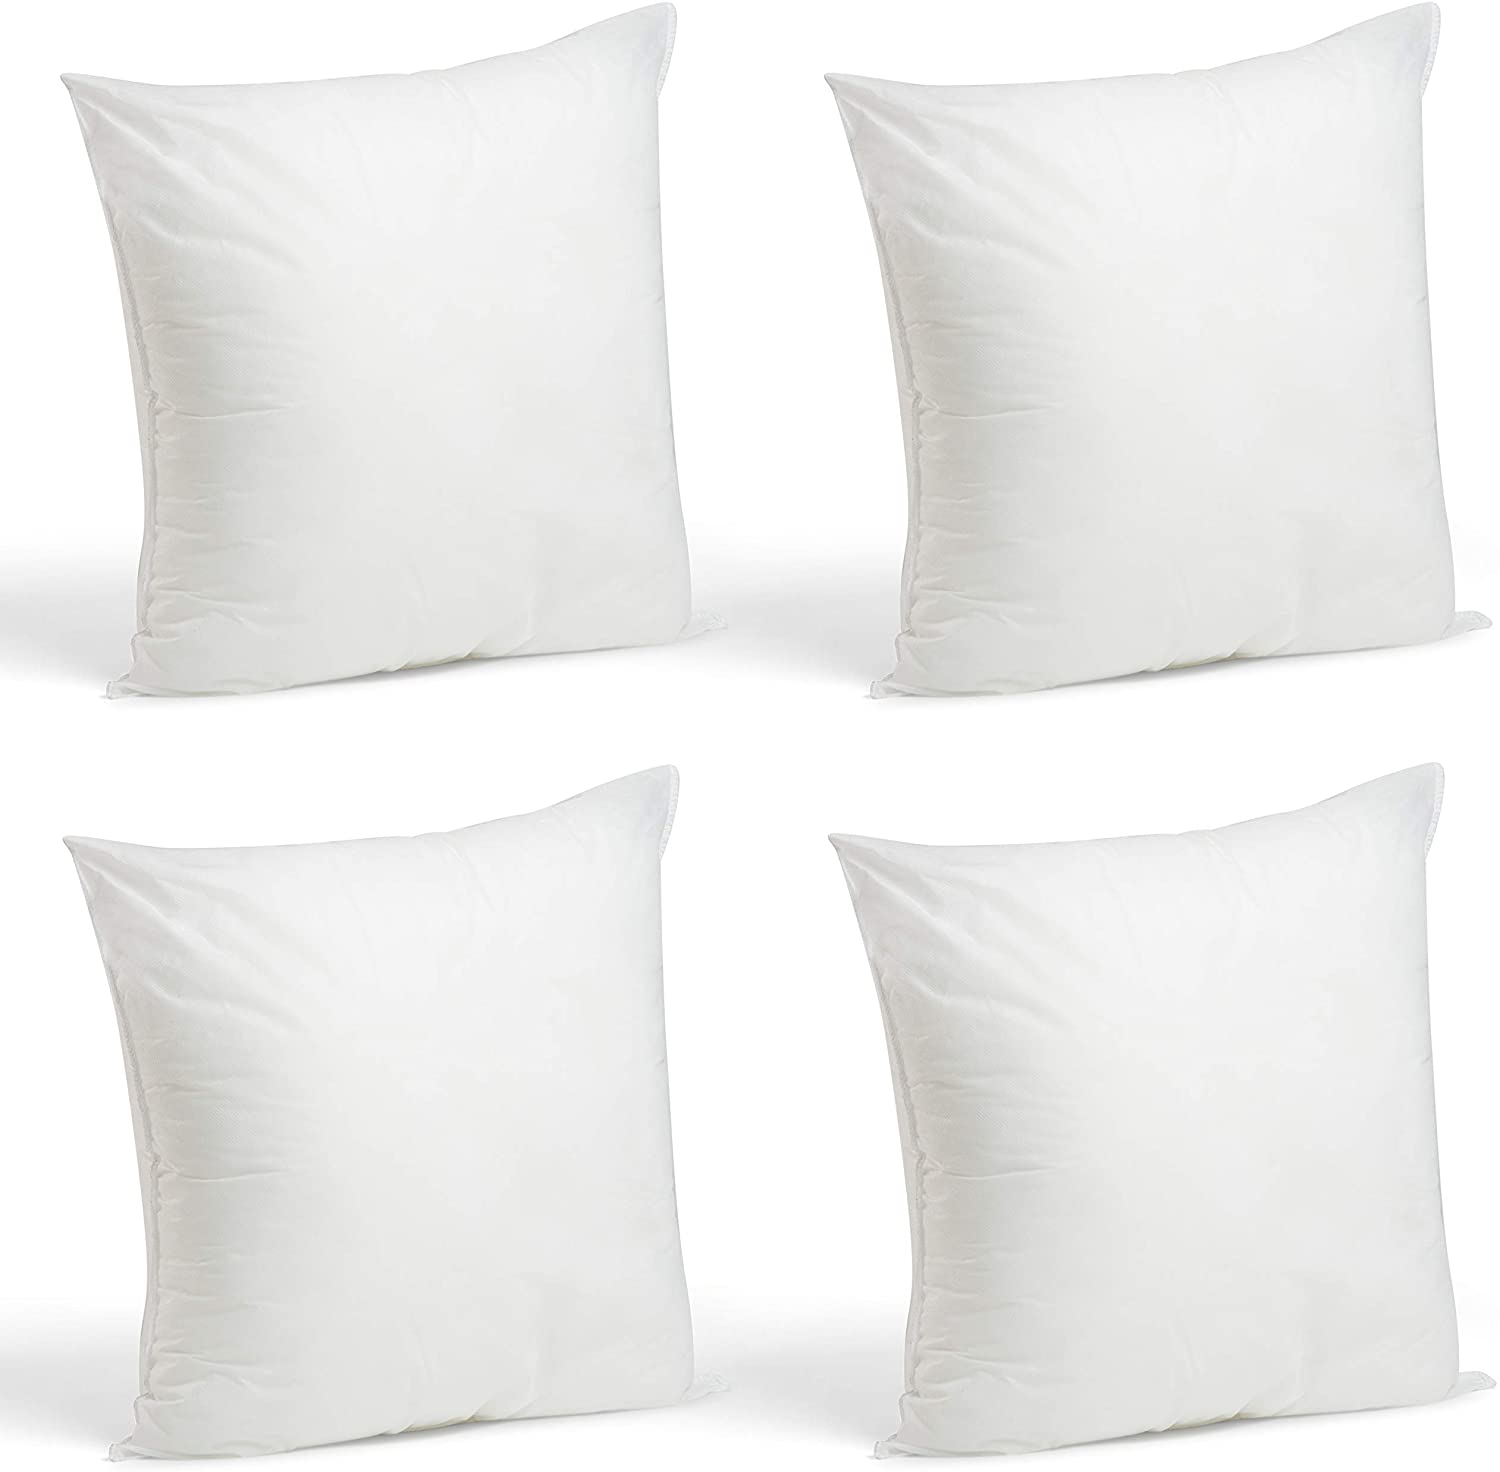 "Foamily Set of 4-18 x 18 Premium Hypoallergenic Stuffer Pillow Inserts Sham Square Form Polyester, 18"" L X 18"" W, Standard/White: Home & Kitchen"